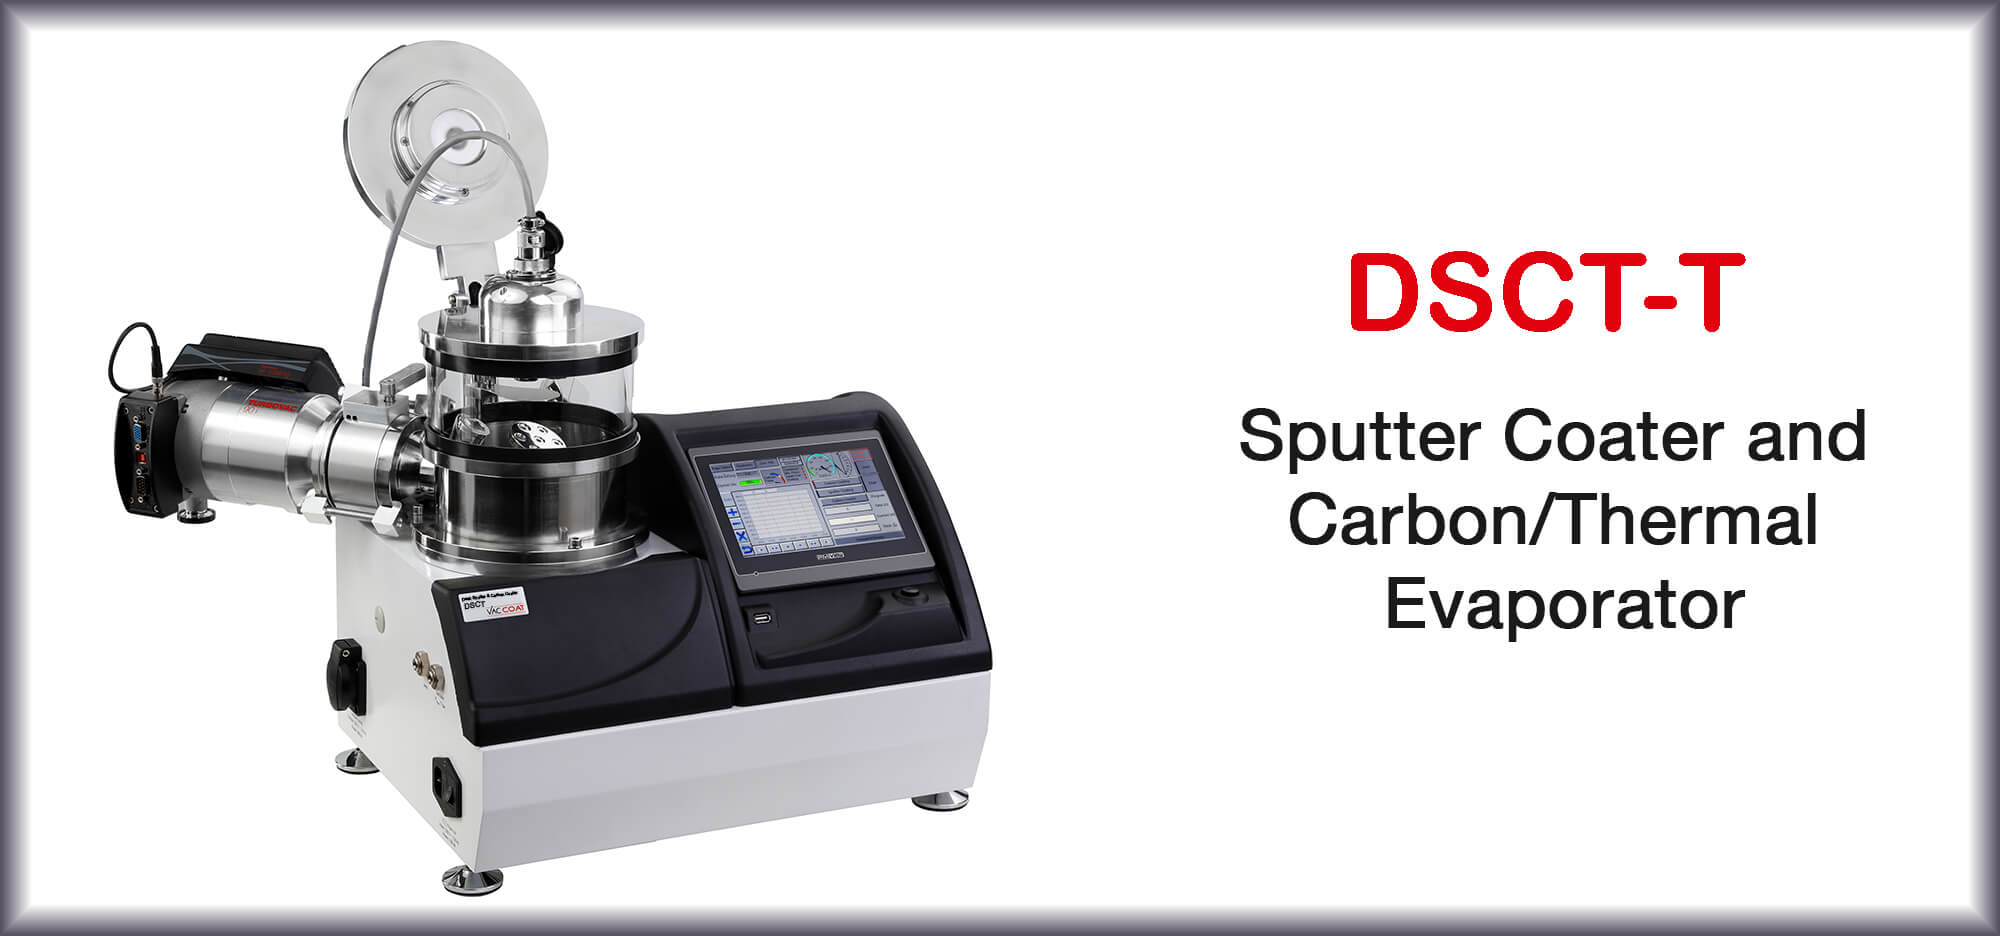 Sputter & Carbon Coater with Thermal Evaporator - DSCT-T | VacCoat Product | Sputter Coater and Carbon/Thermal Evaporator – DSCT-T